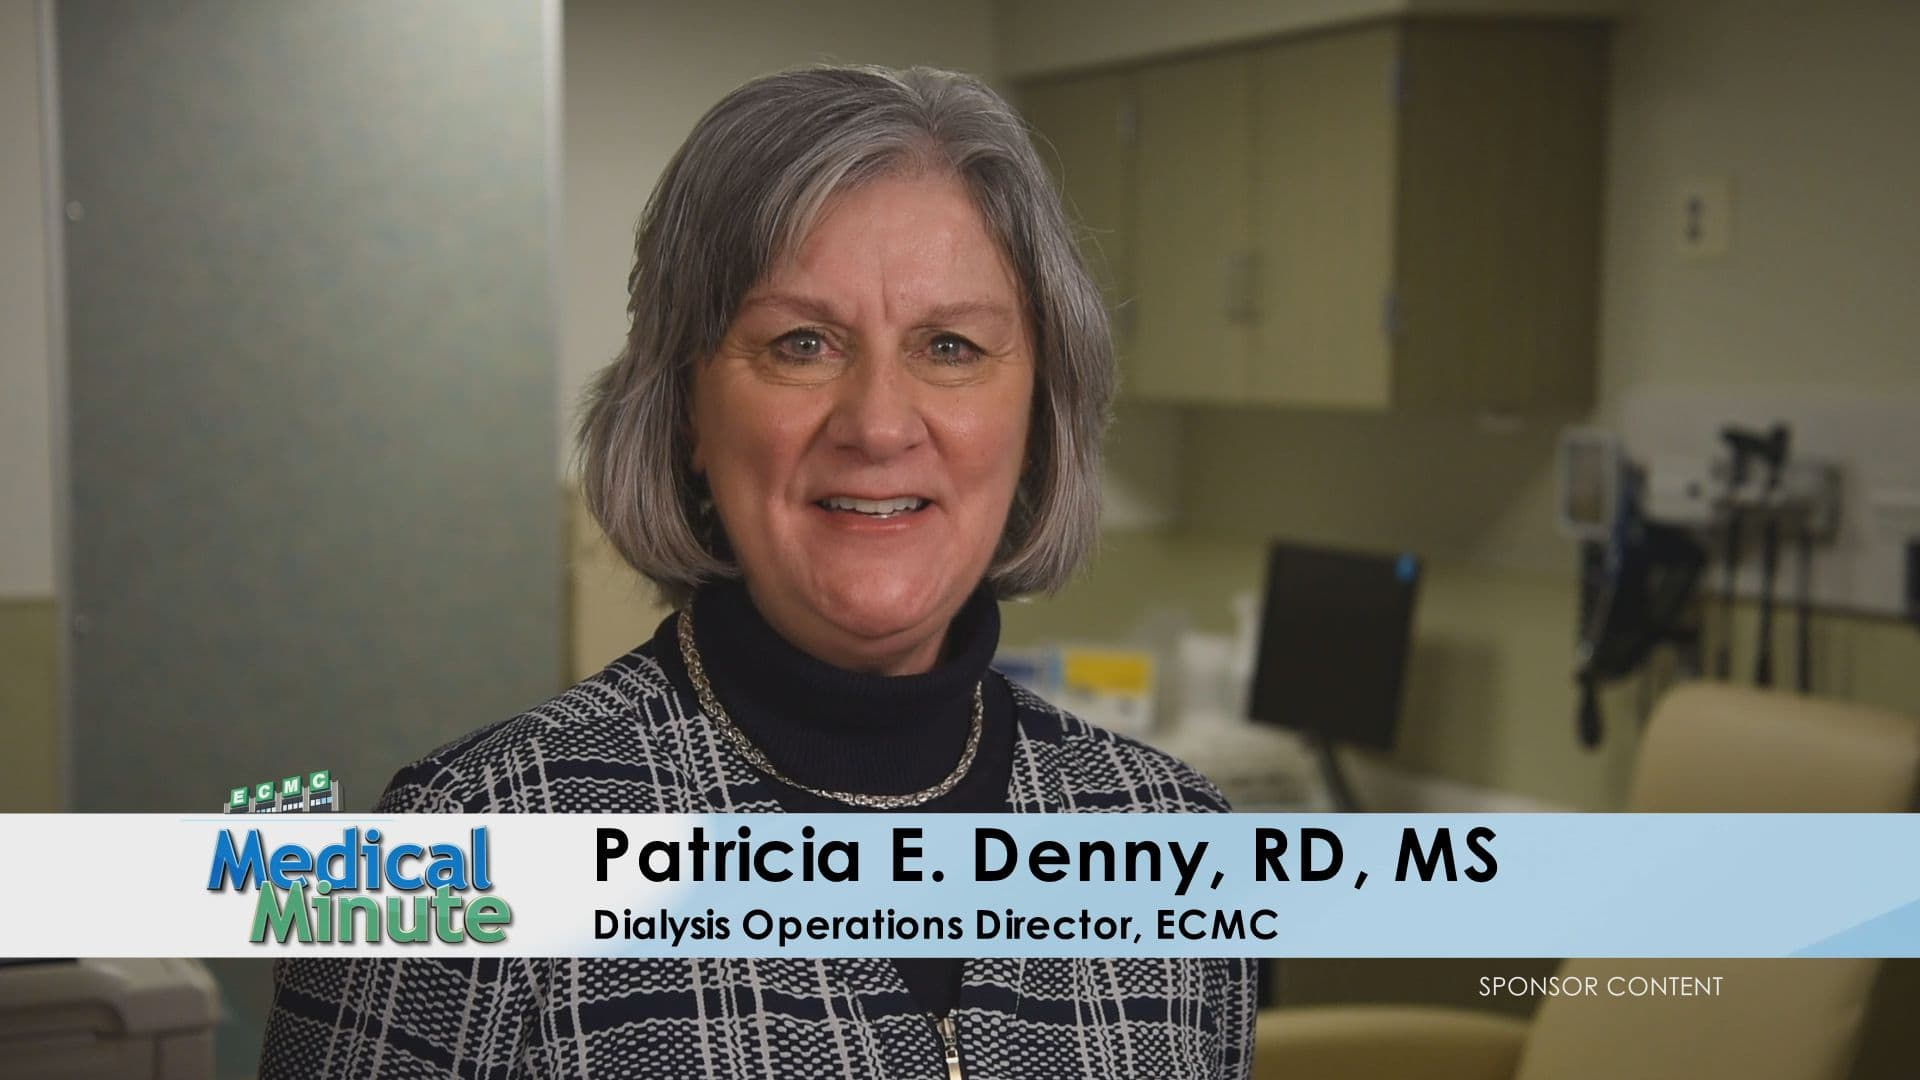 ECMCMedicalMinute PatriciaDenny,RD,MS KidneyDiseasePatientEducationSessions 082619 STILL